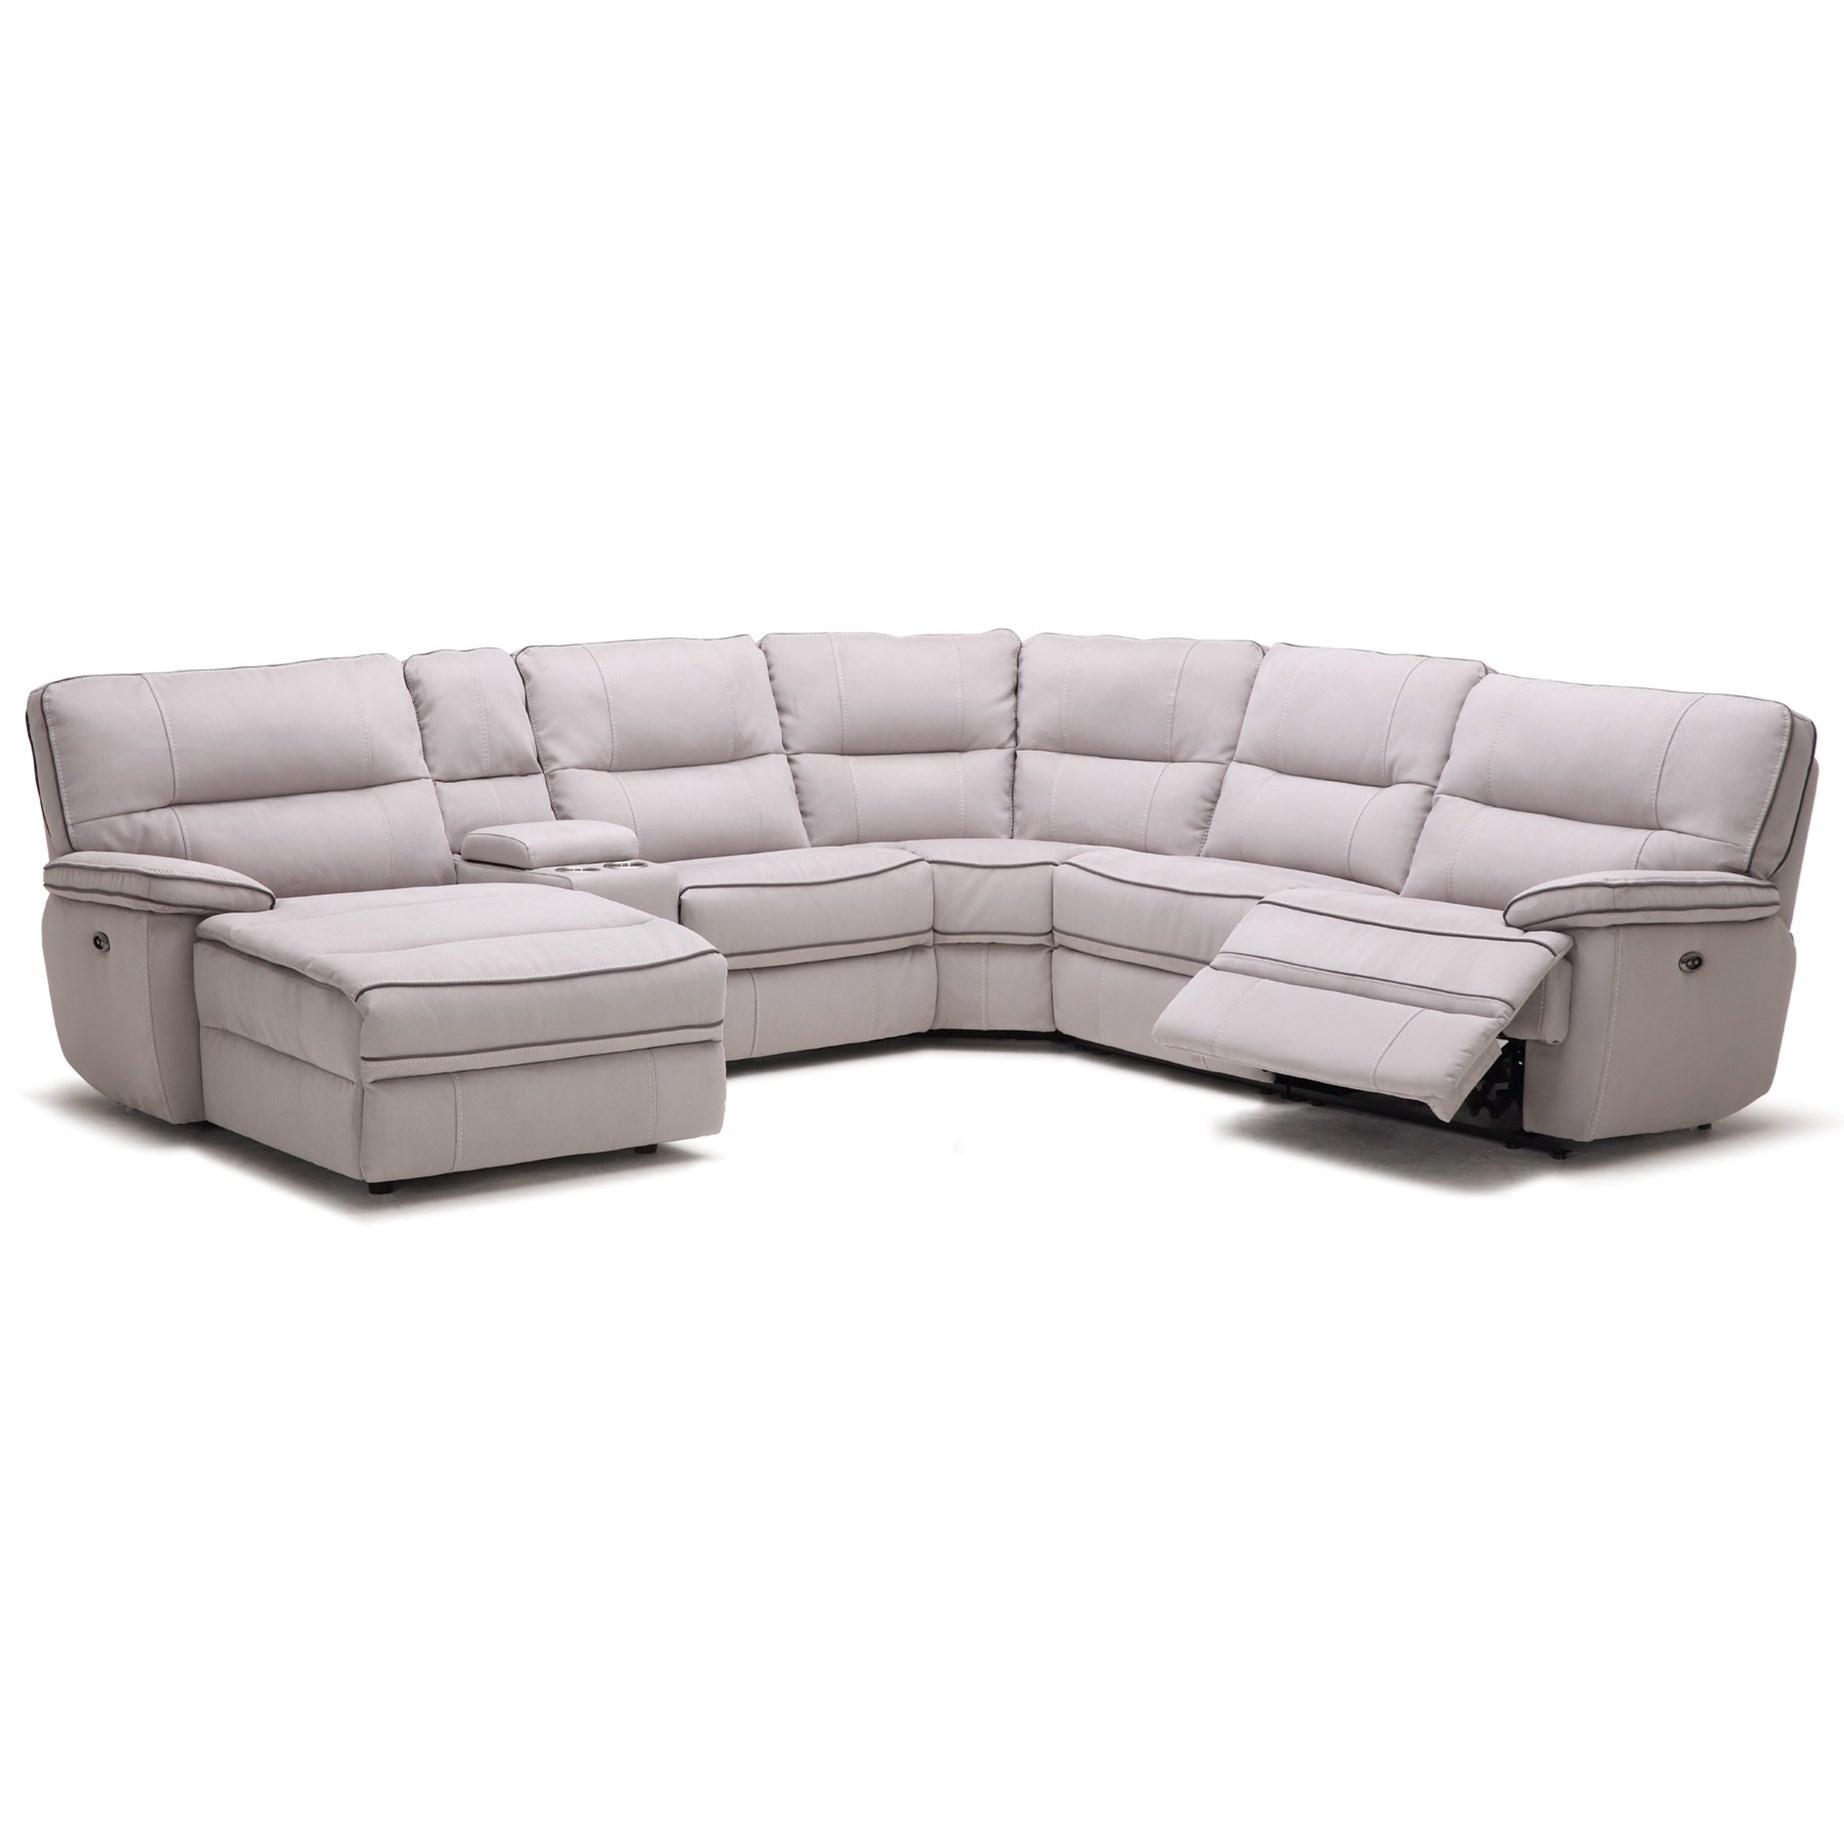 black leather living room furniture sets%0A Kuka Home KM      Pc Pwr Reclining Sectional Sofa